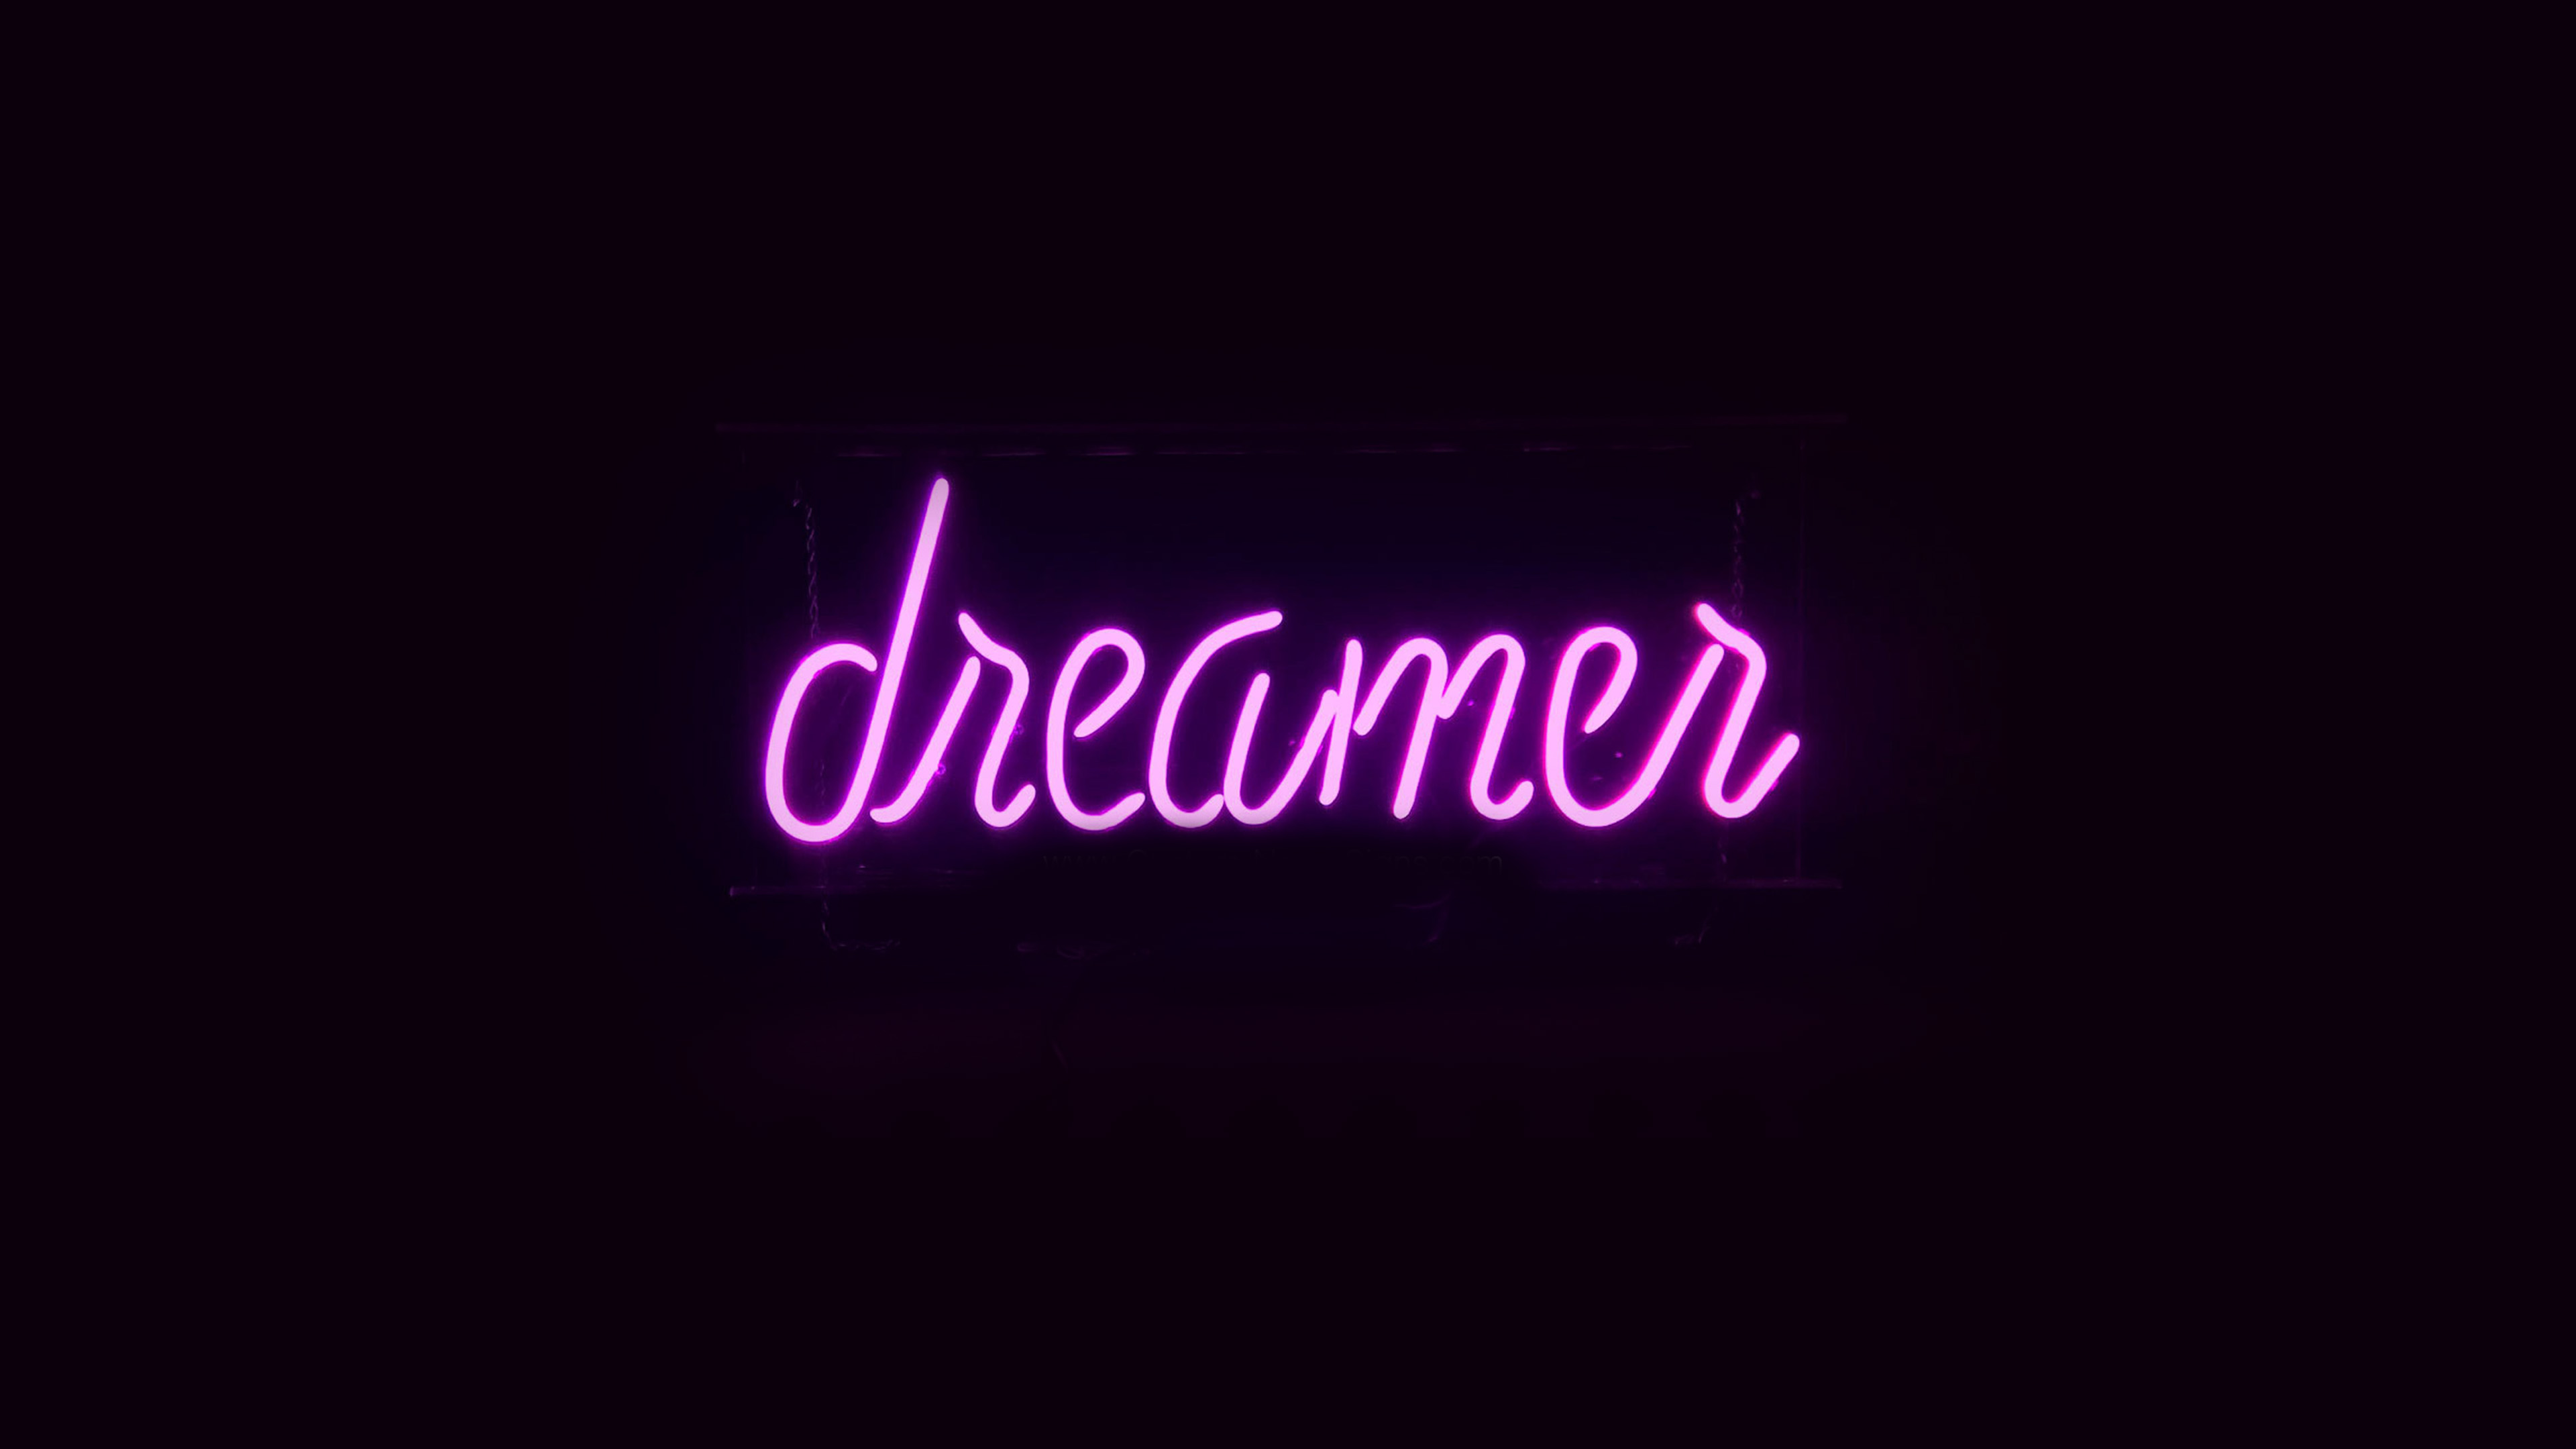 Neon Sign Iphone Wallpaper 3840 X 2400